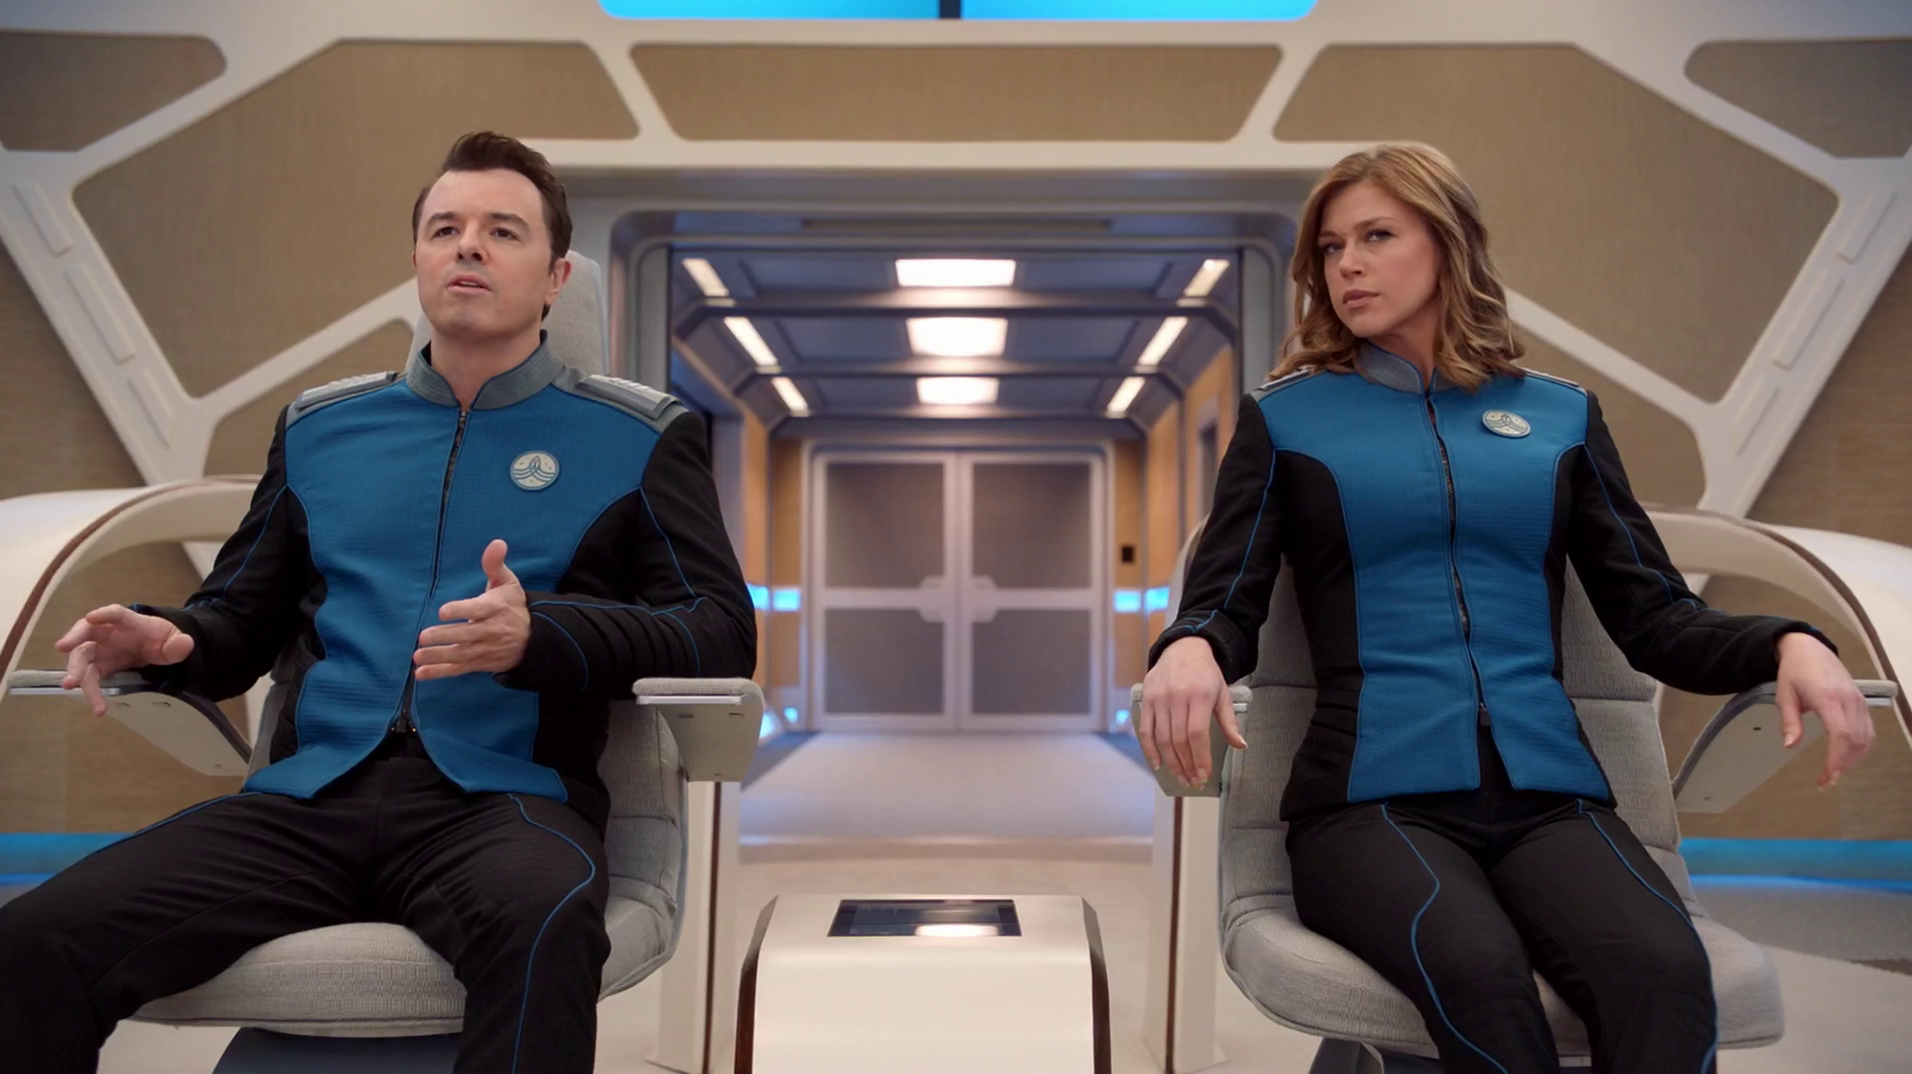 The Orville - Stagione 1 (2018) (Completa) WEB-DLMux 1080P HEVC ITA ENG AC3 x265 mkv Vlcsnap-2018-03-23-0060pc2